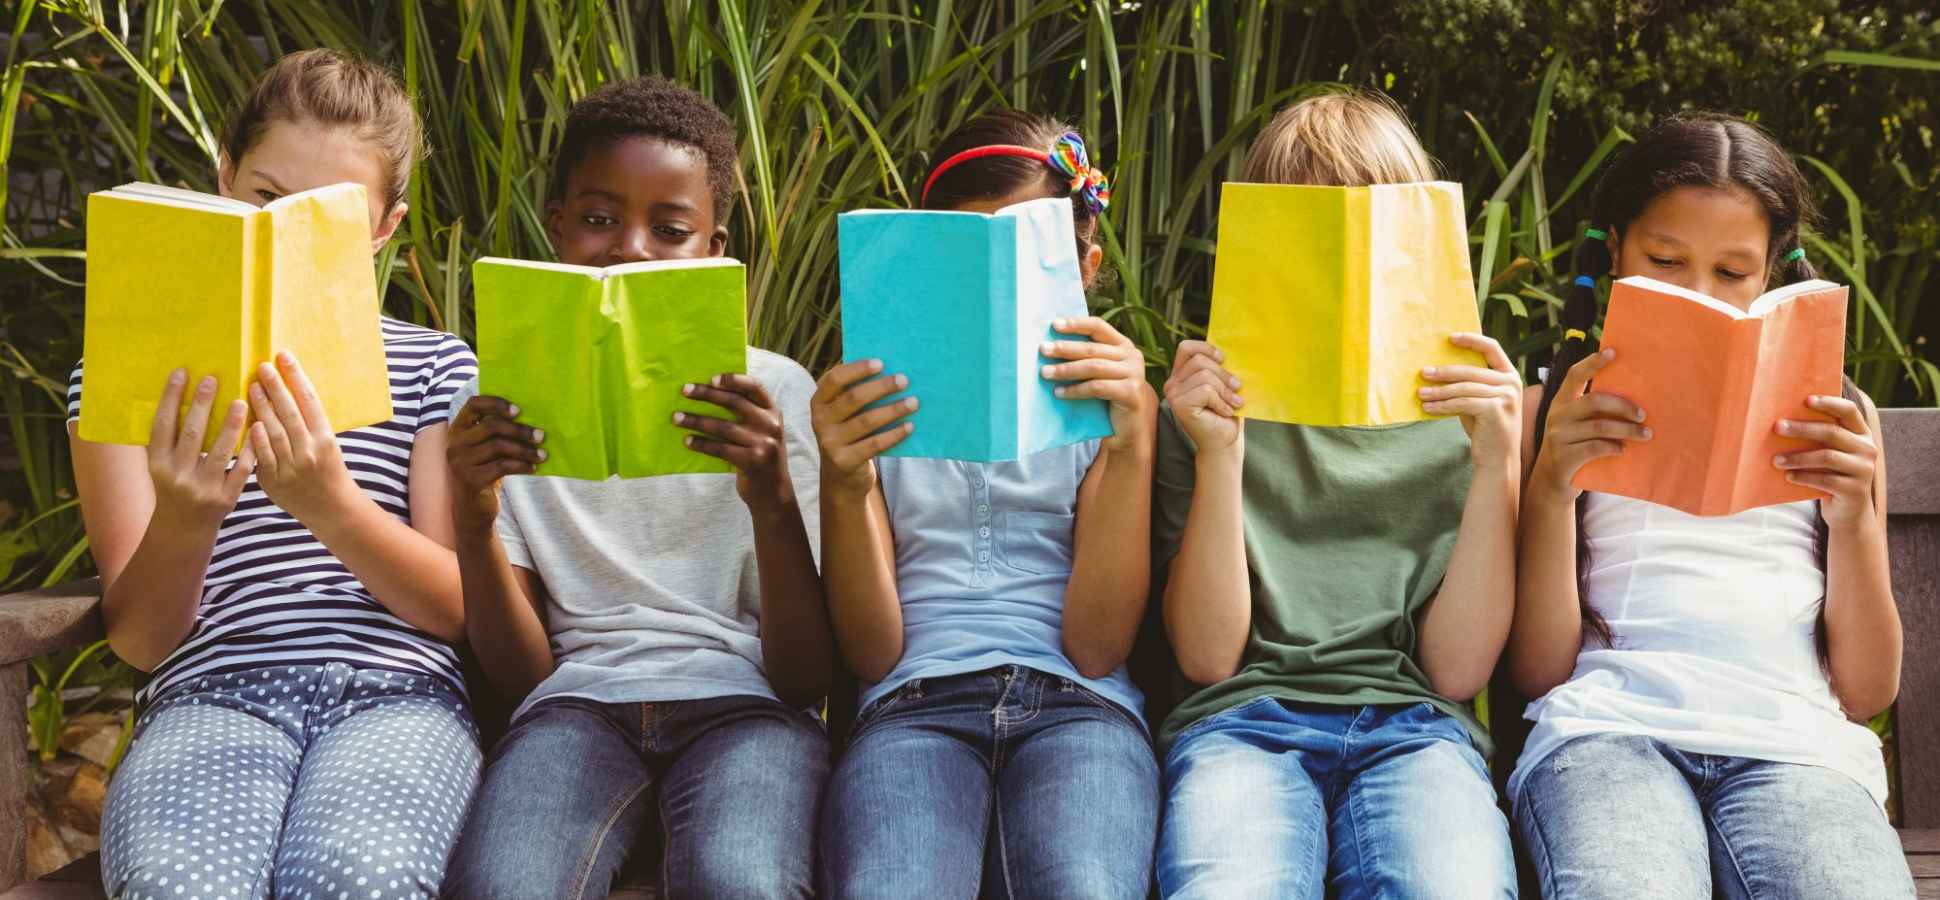 The 9 Reading Habits That Will Ensure Success For Your Child